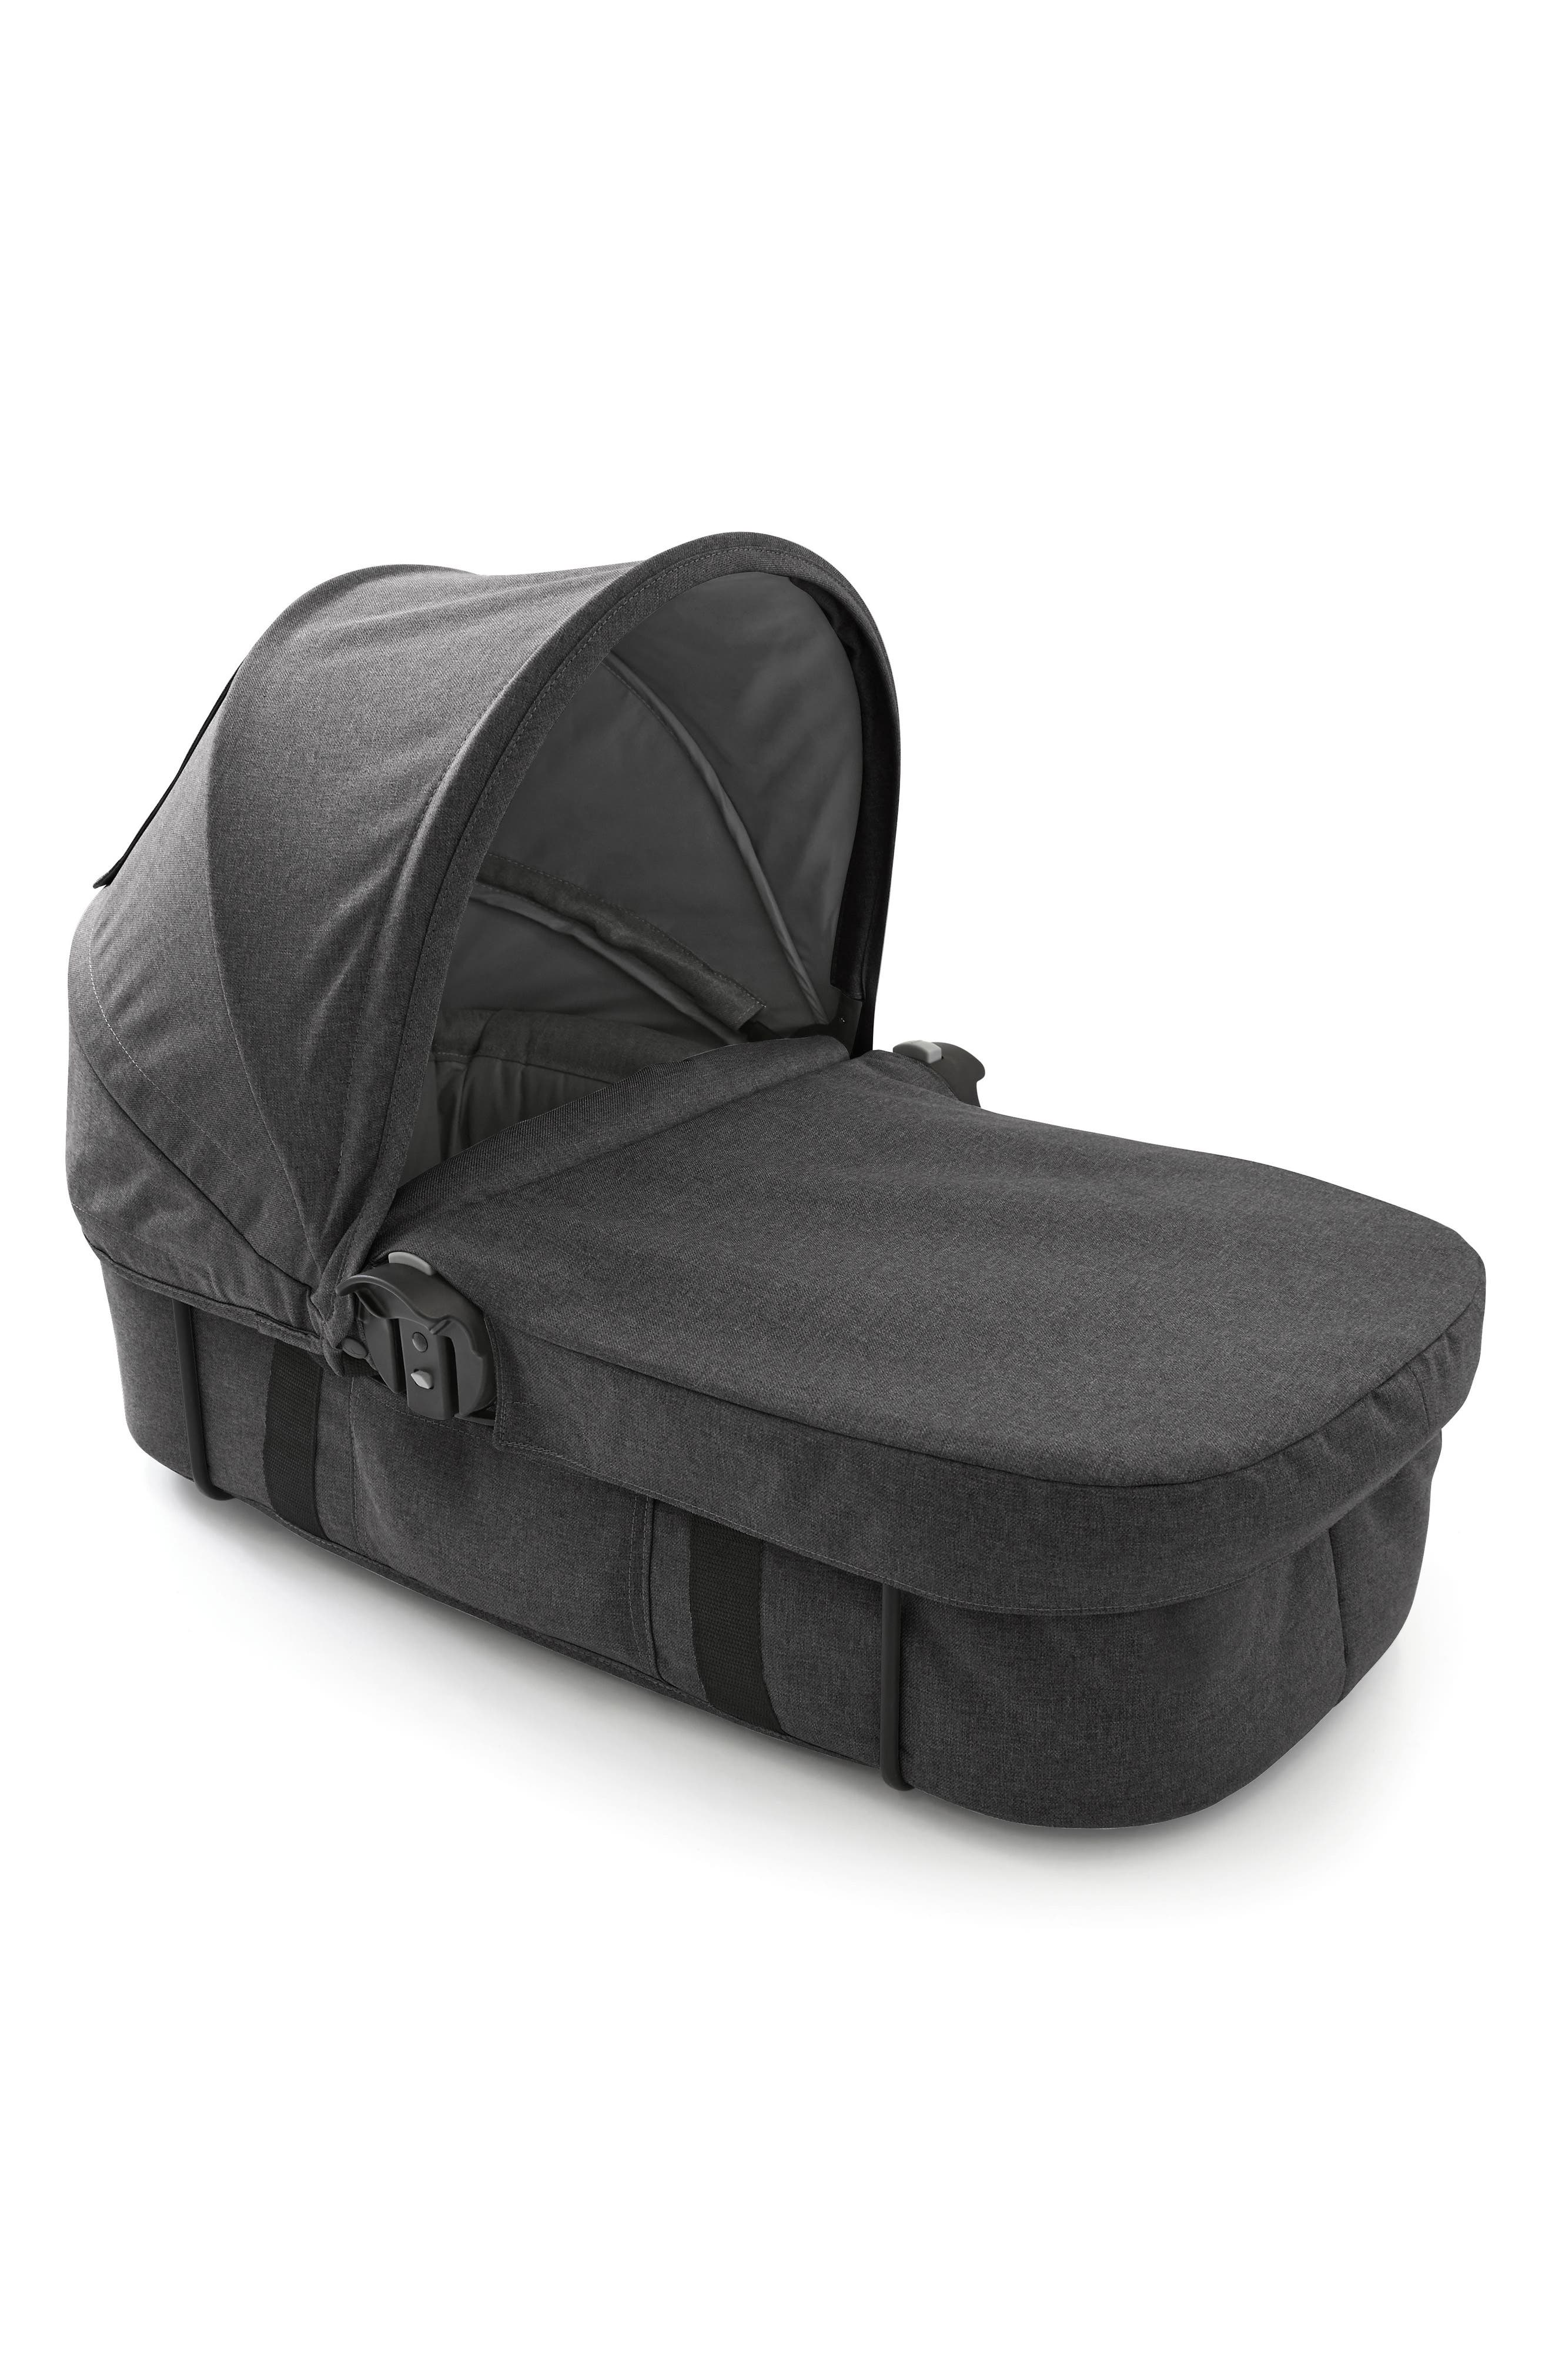 City Select<sup>®</sup> LUX Pram Kit,                         Main,                         color, GRANITE